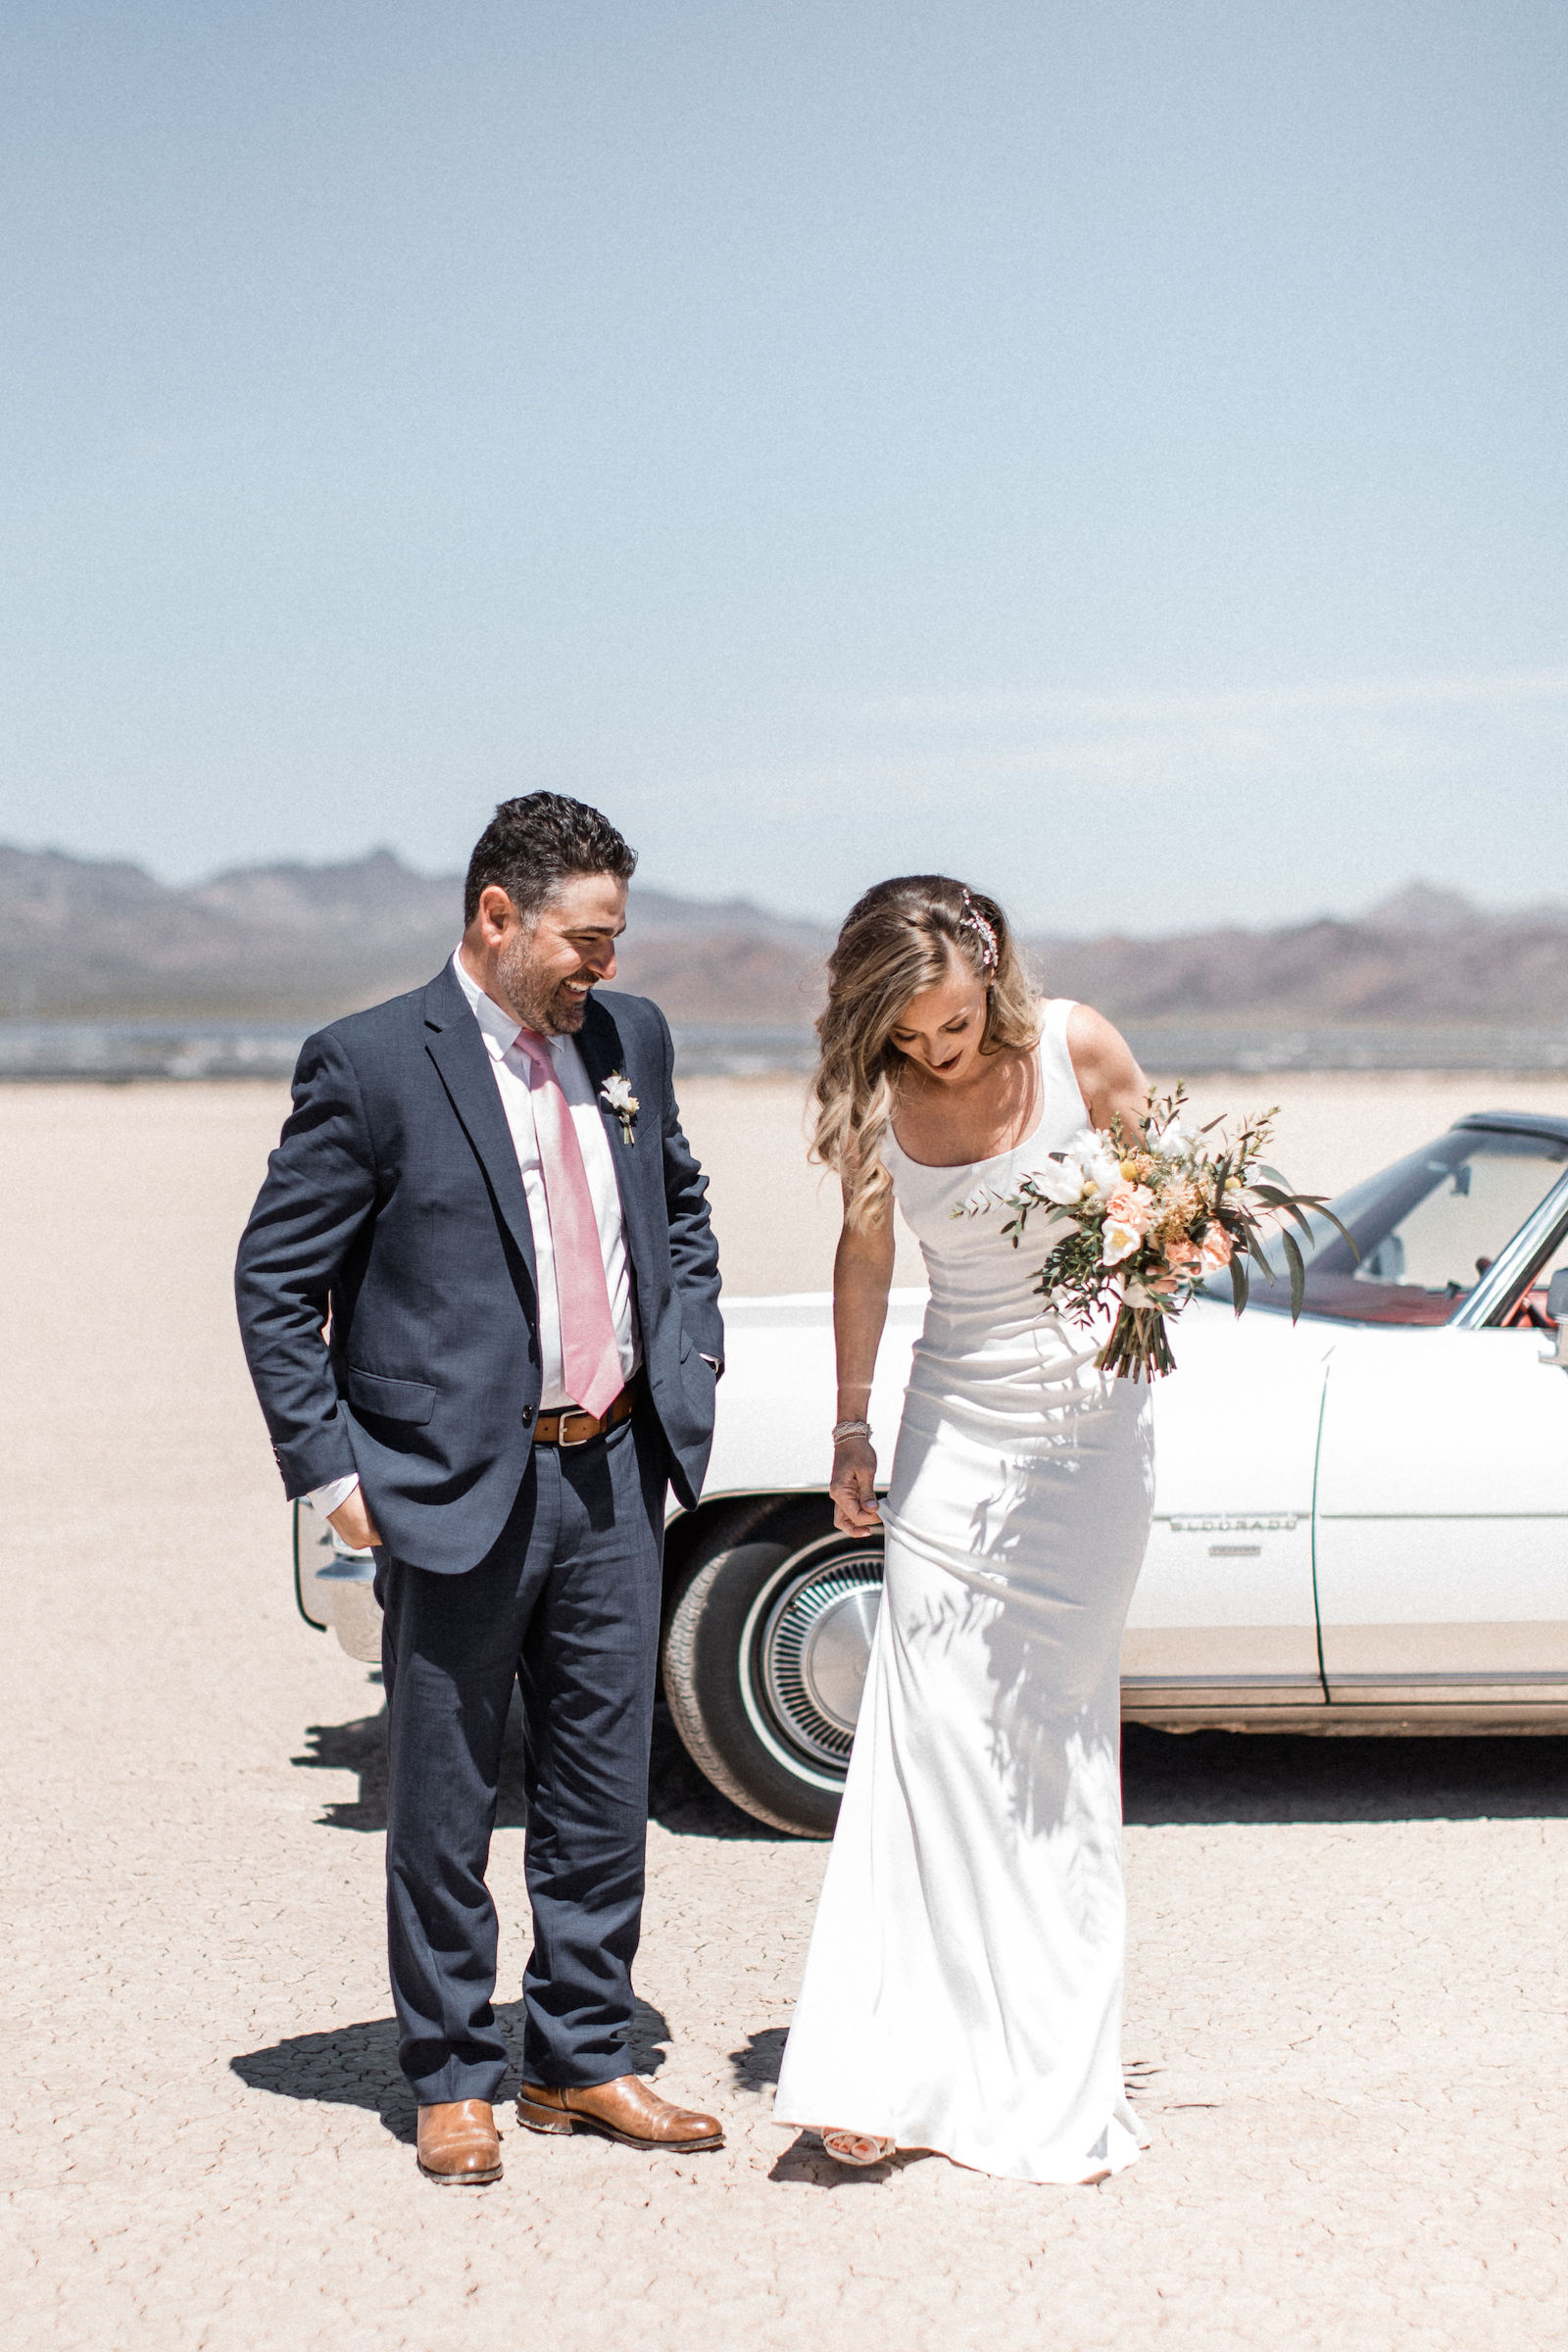 cadillac convertible dry lake bed elopement 00001.jpg